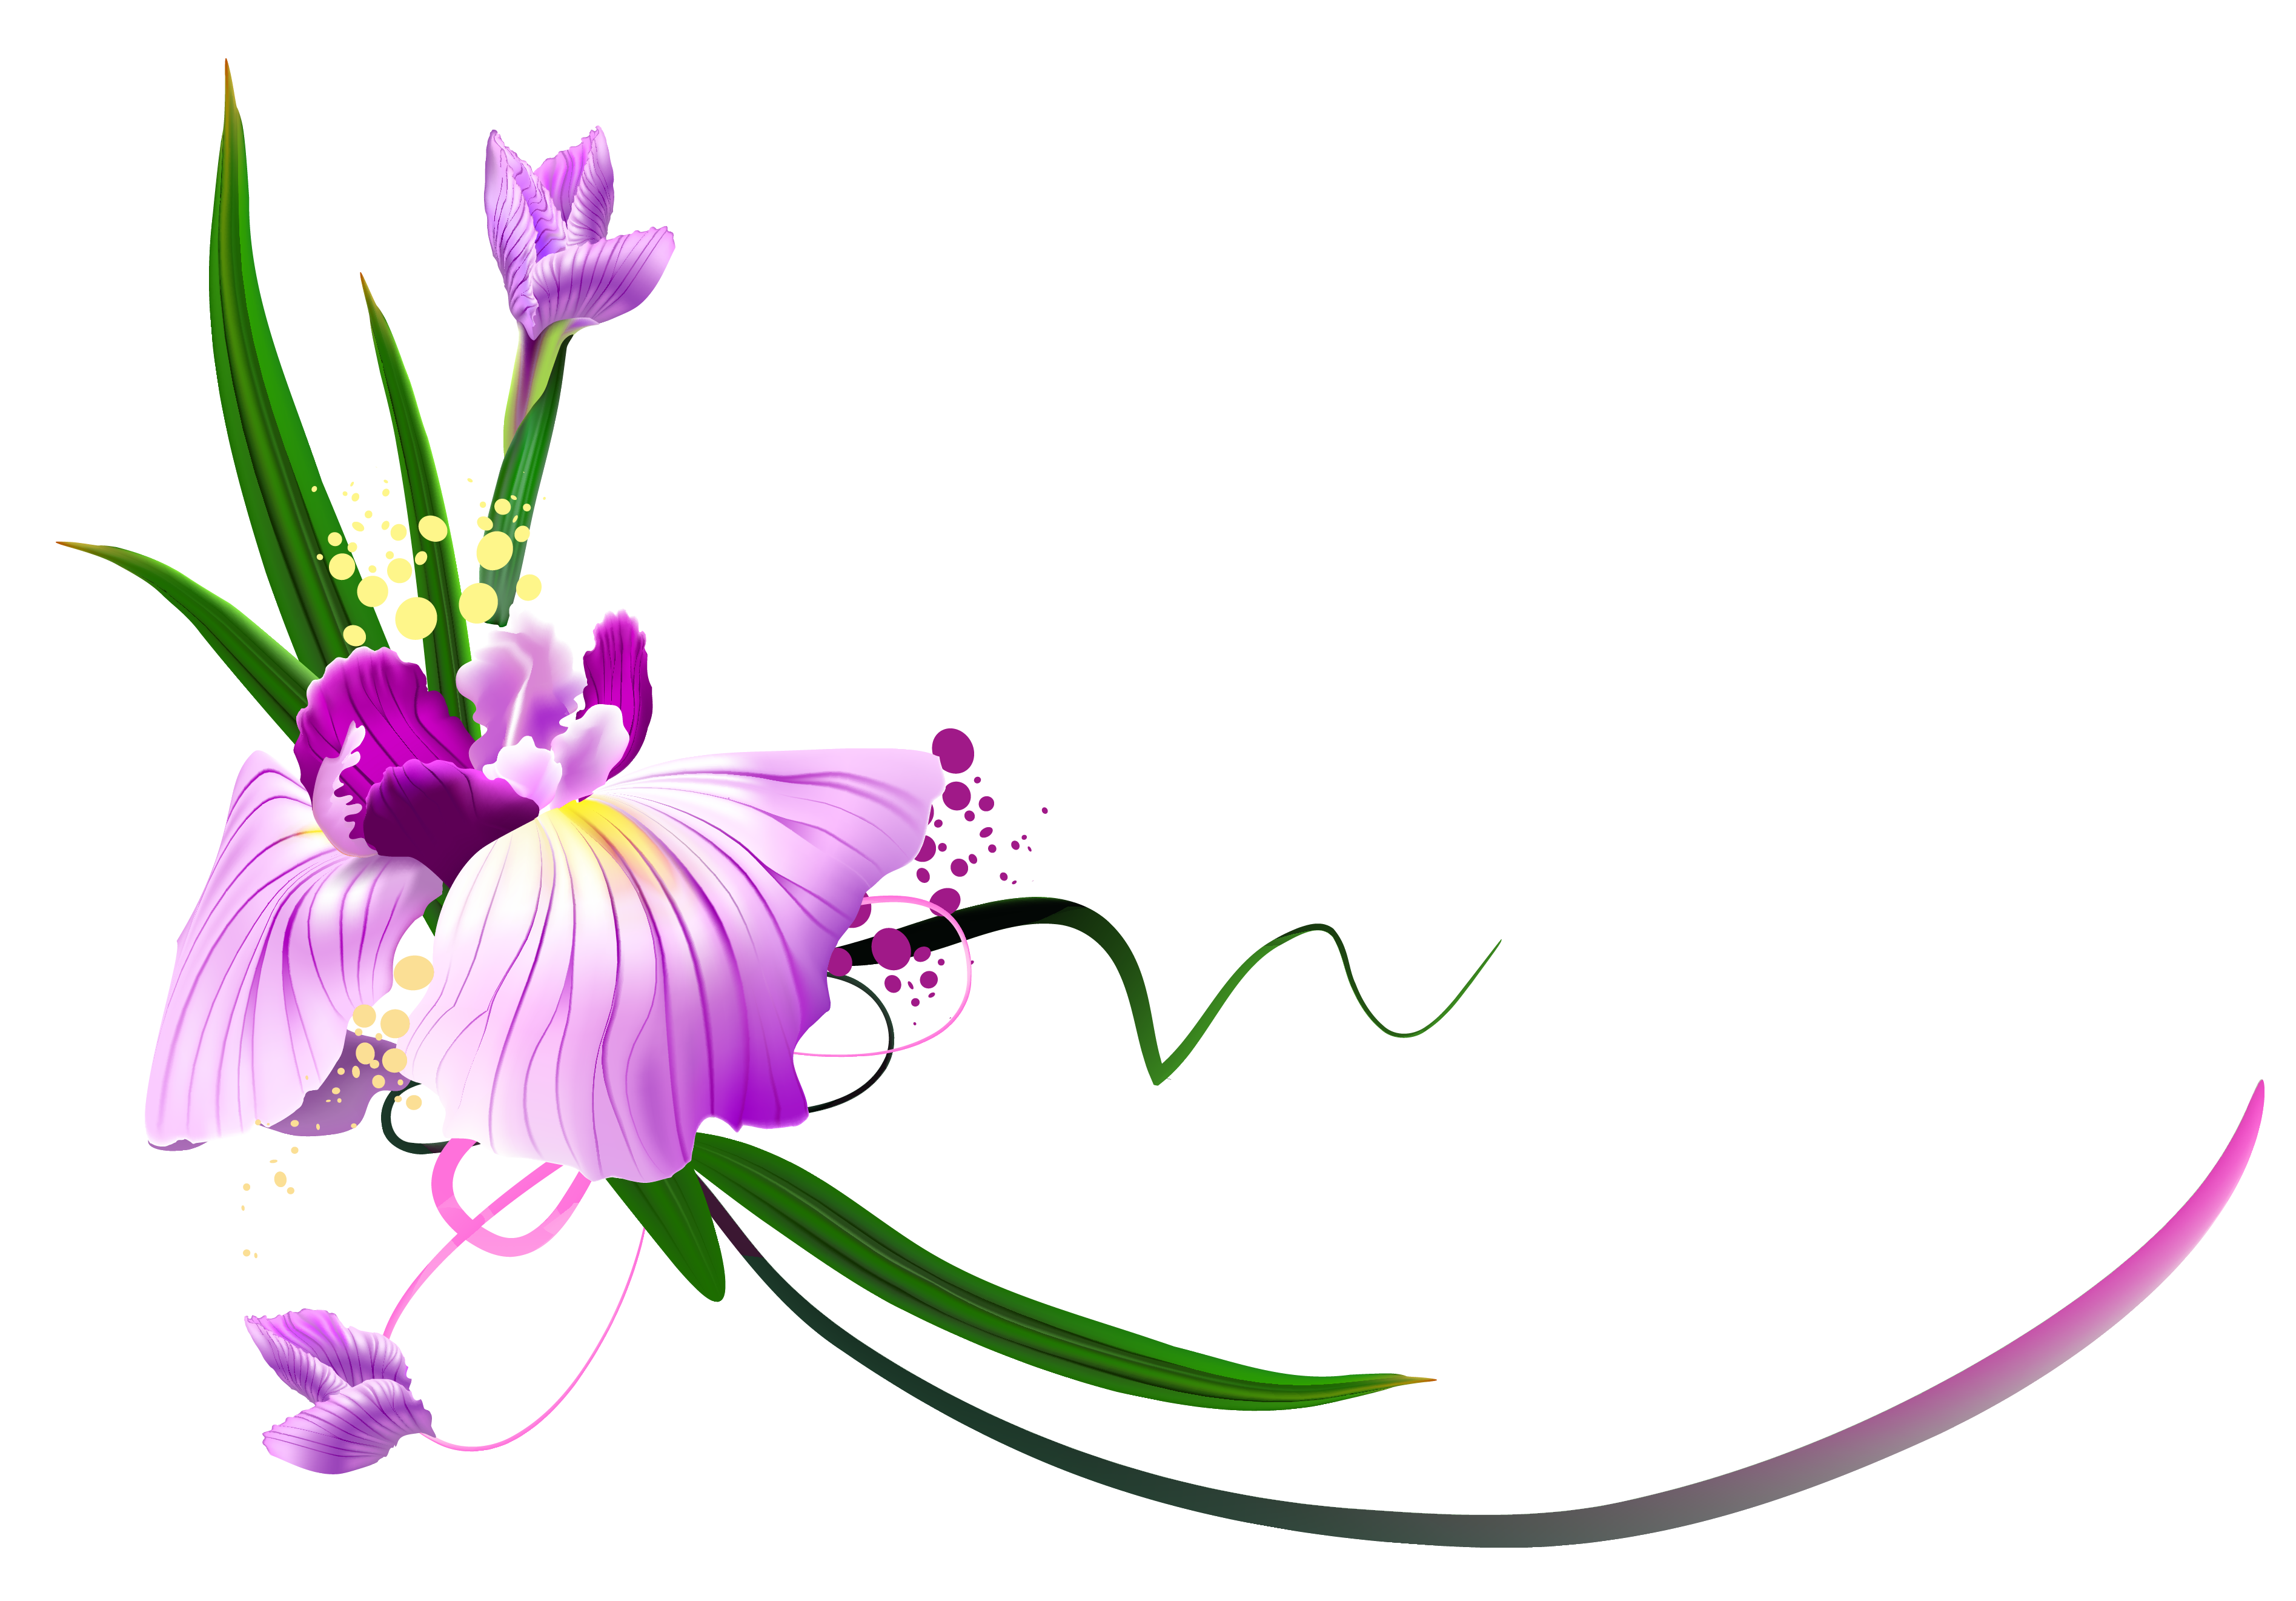 Vines clipart purple flower. Beautiful floral decor png